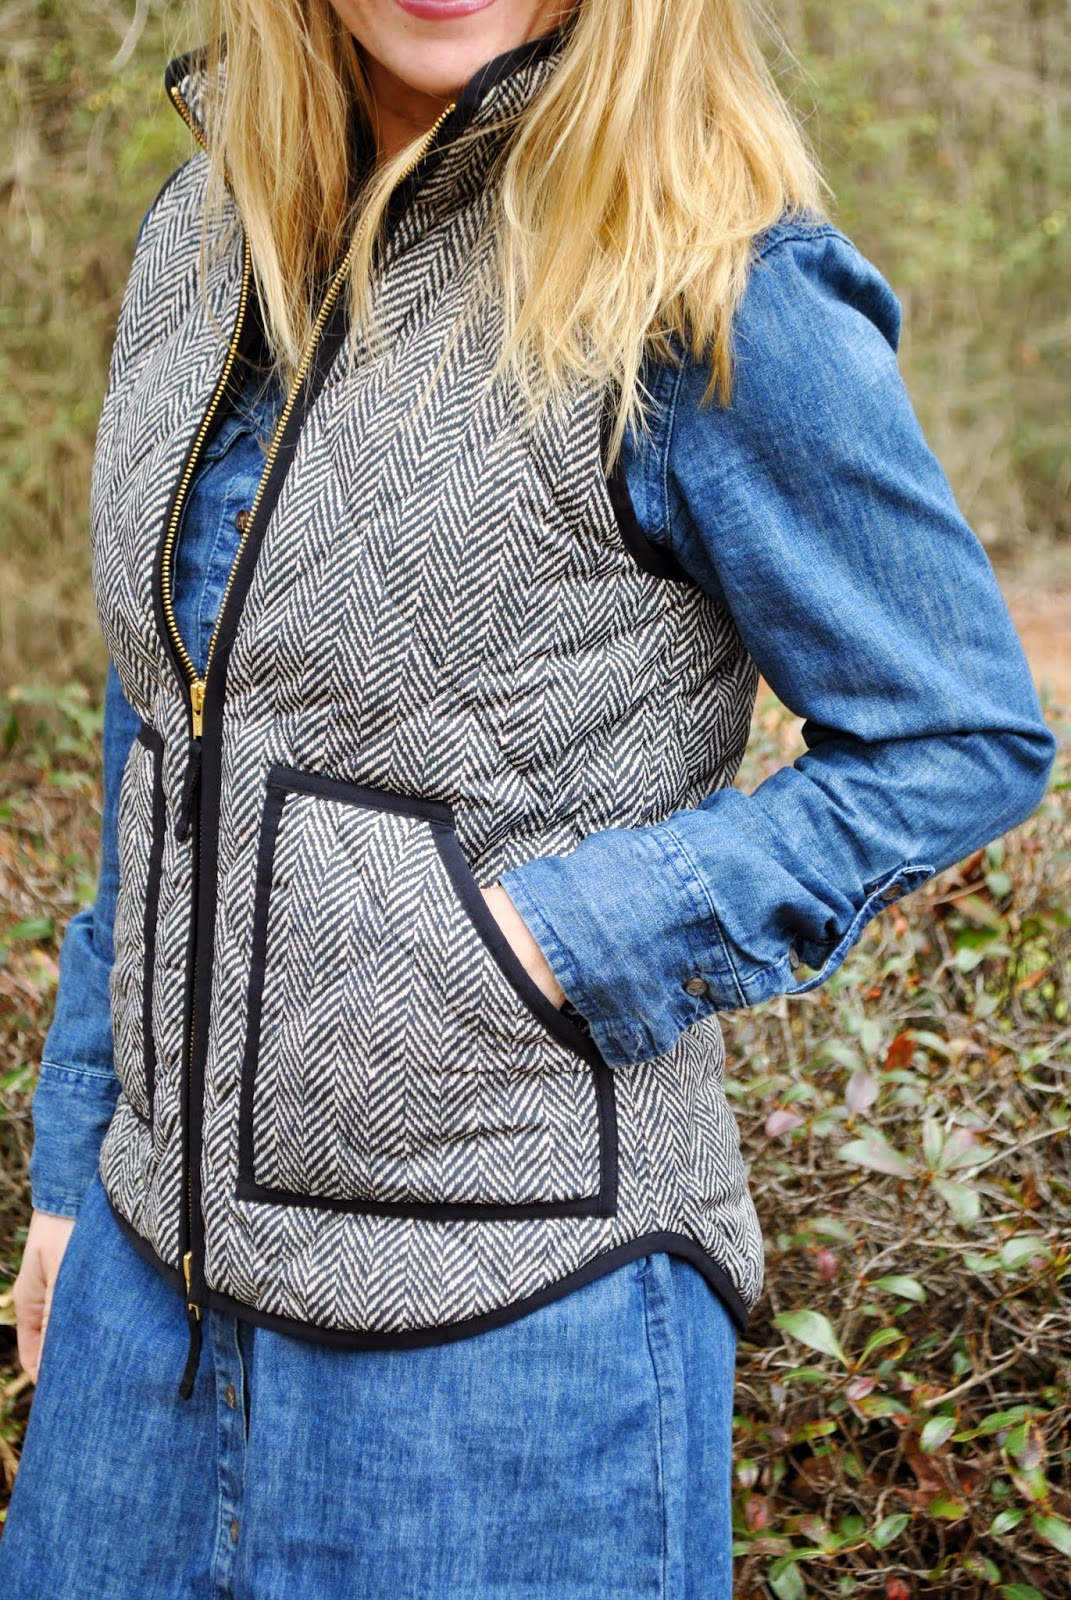 J crew Herringbone Vest, Chambray Shirtdress, Chambray Dress, Nordstrom Reversible Tote, Sunshine and Sequins Fashion BLog